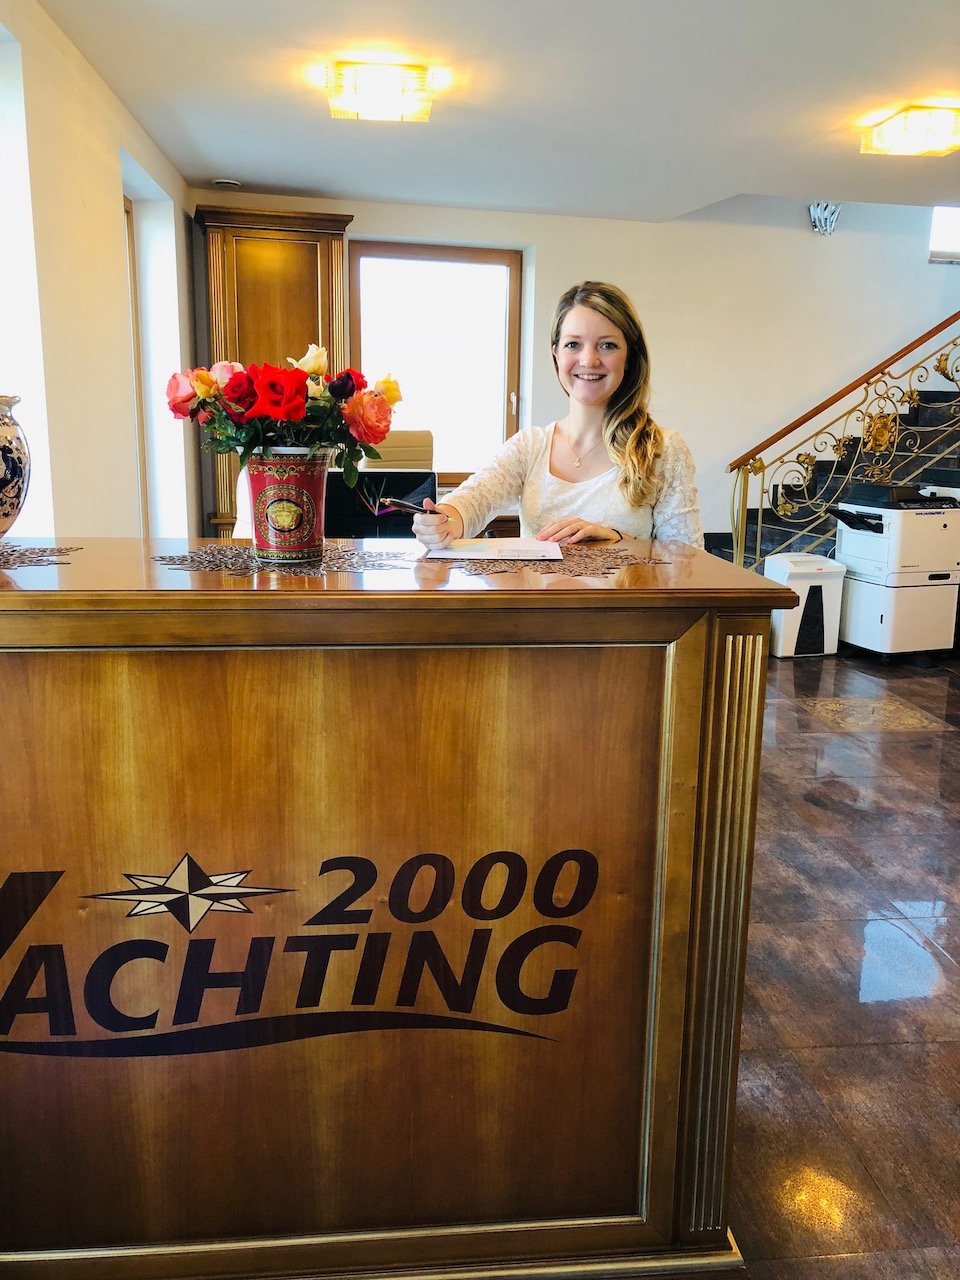 Yachting 2000 / Office